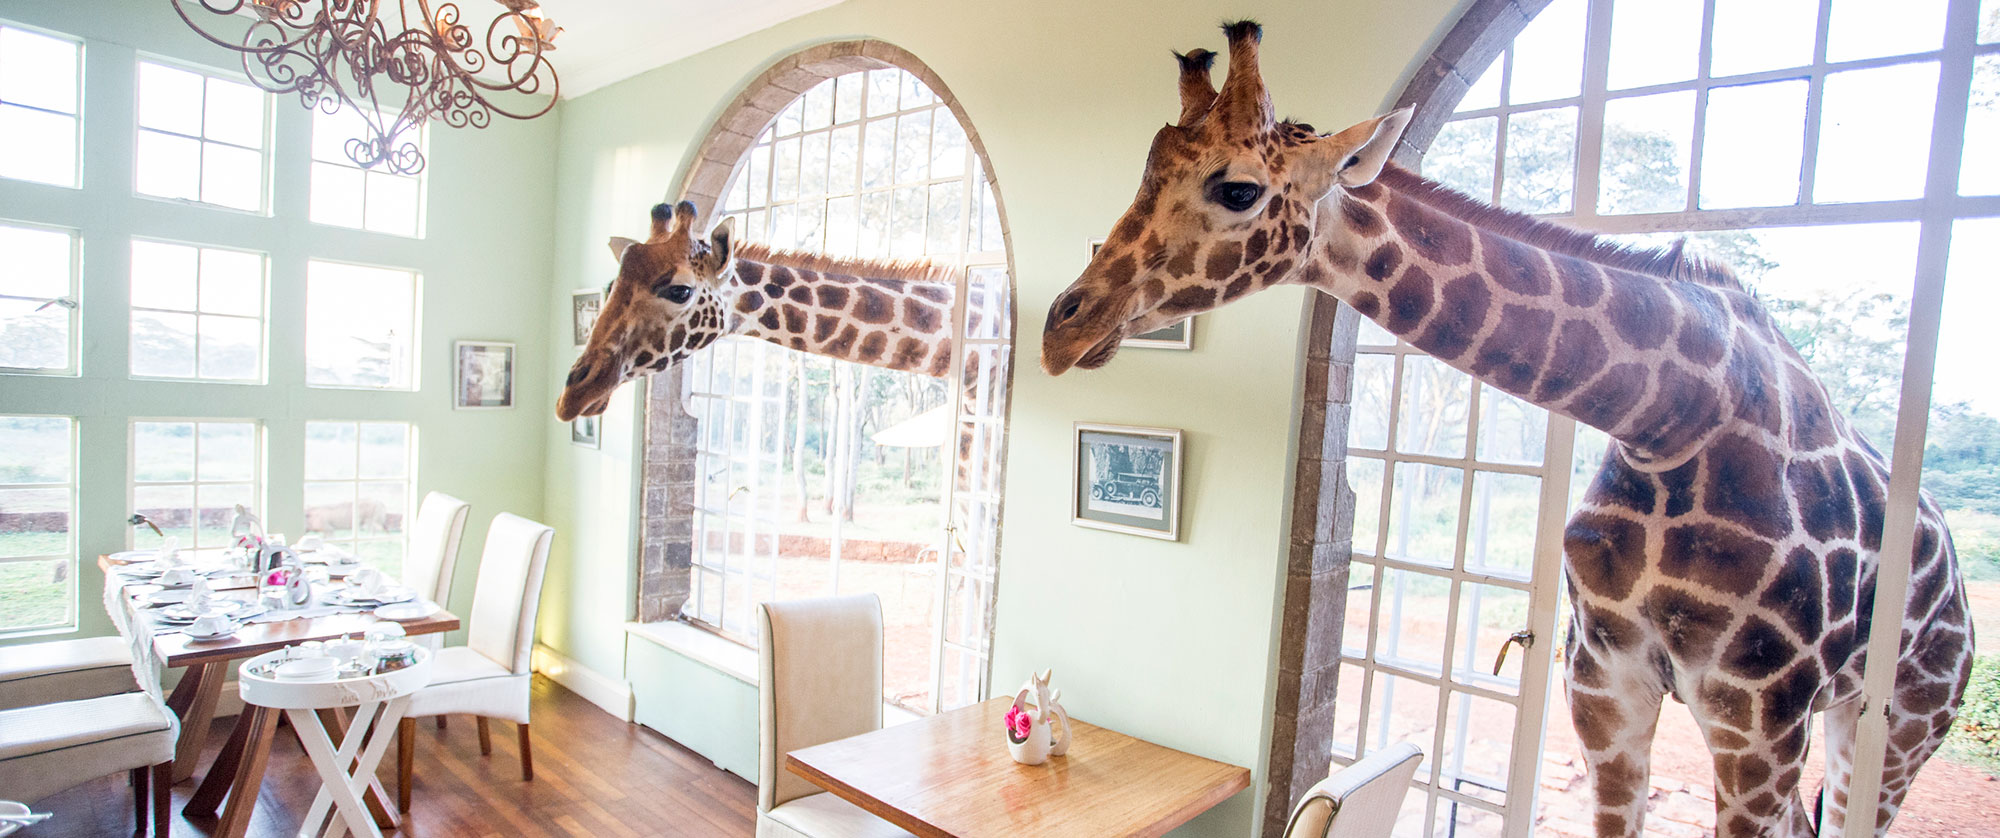 Classic Kenya Luxury Safari Package - Giraffe Manor Kenya